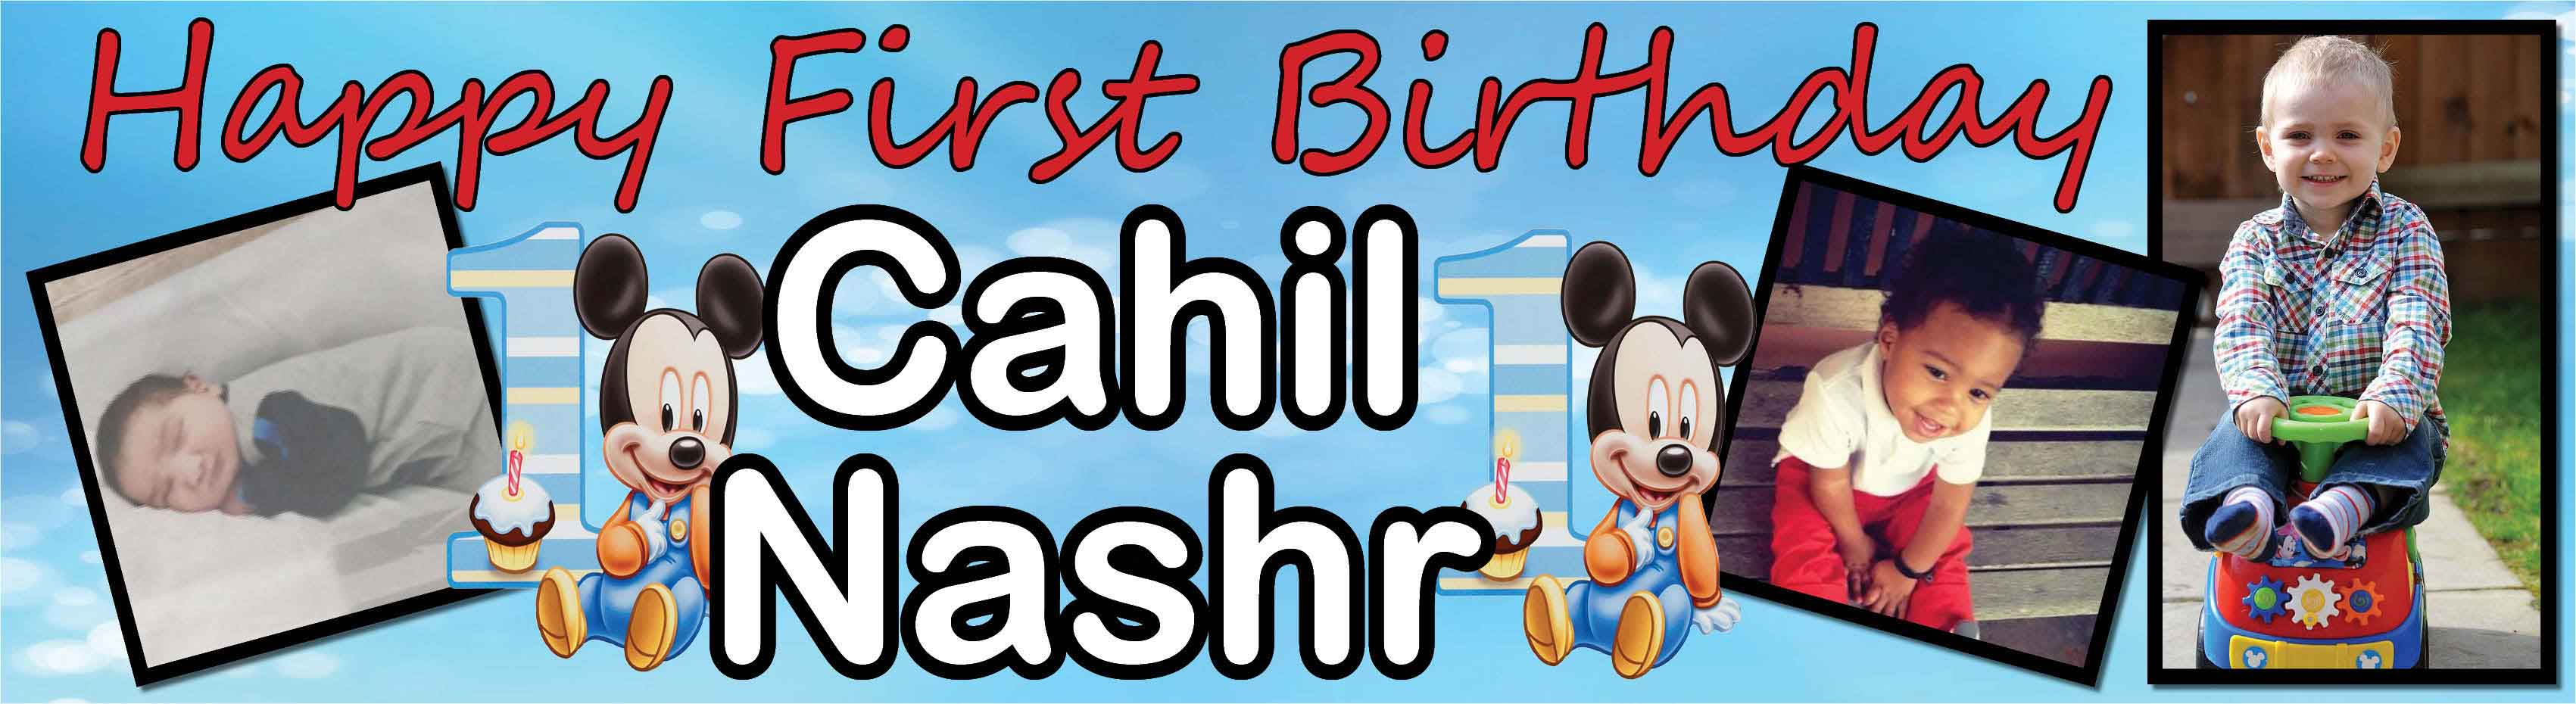 1st Birthday Party Banner